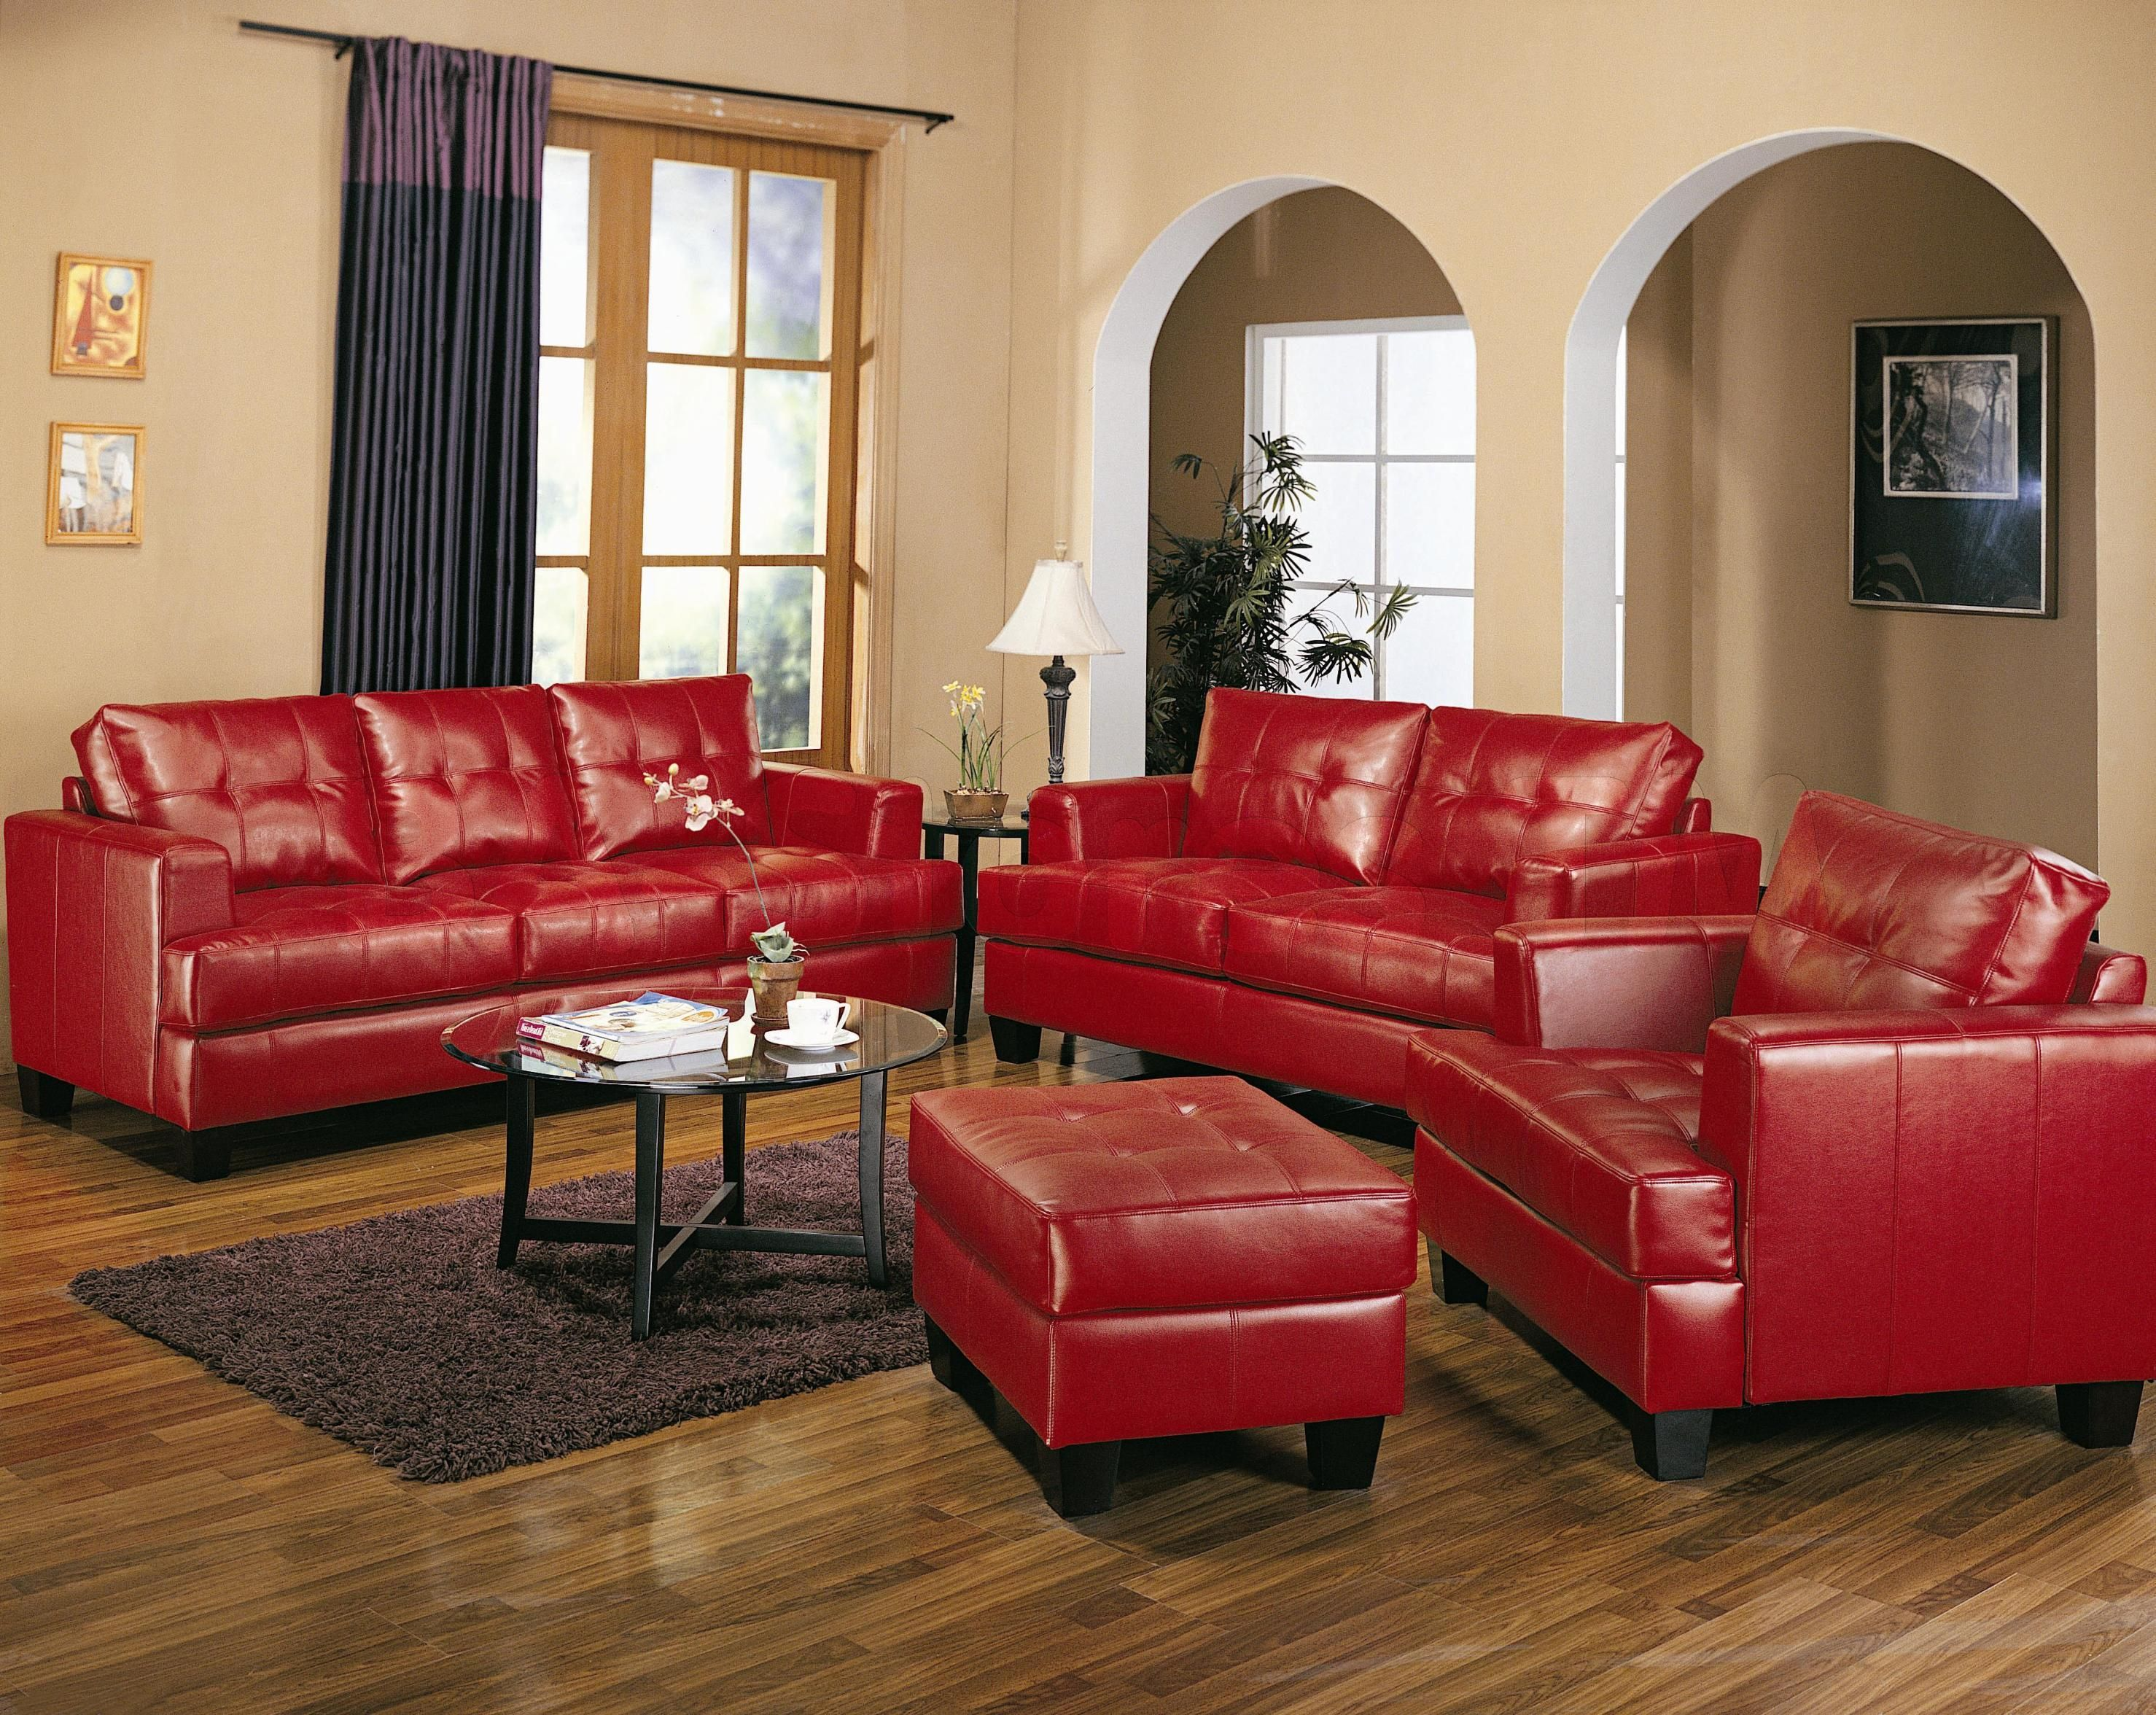 Awesome Red Leather Living Room Furniture Elegant Red Leather Living Room Furniture 11 On M Leather Living Room Set Red Couch Living Room Living Room Leather